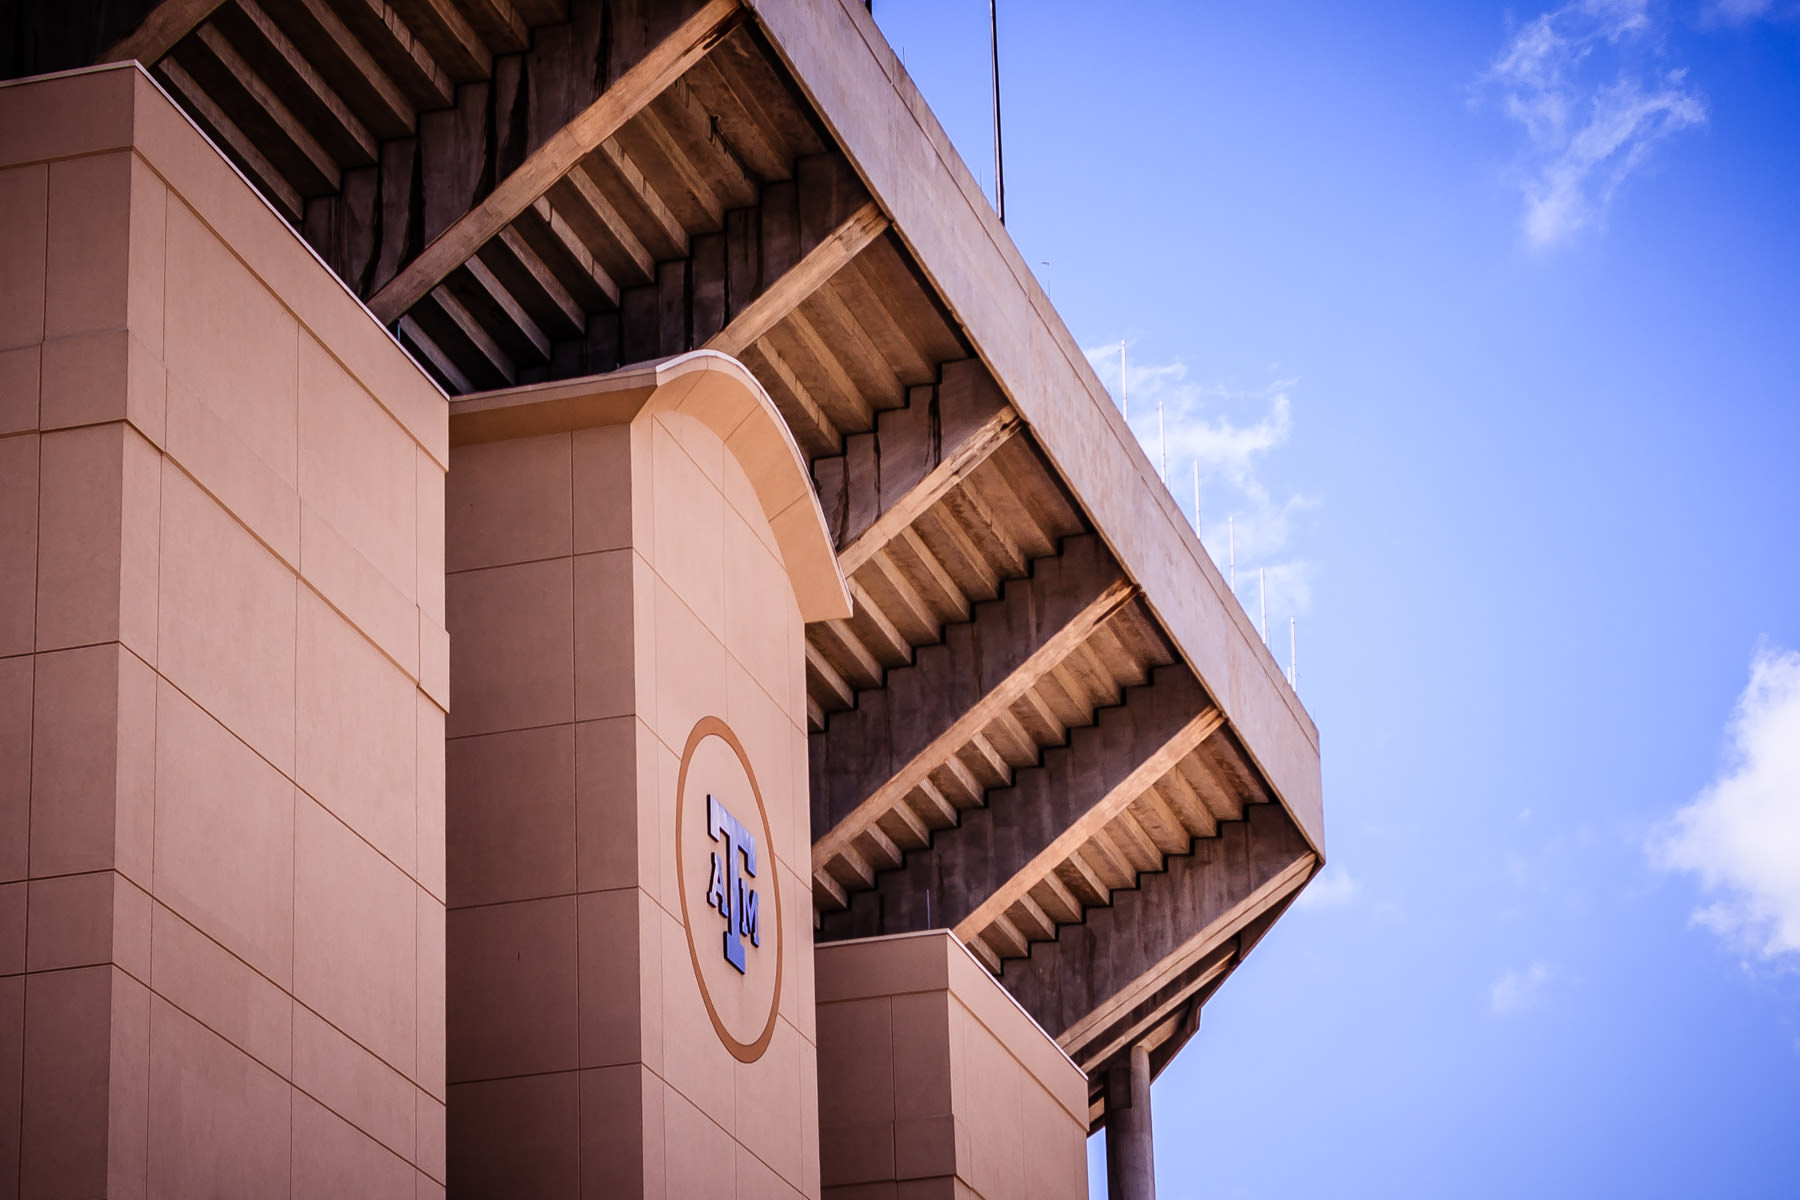 Exterior detail of Kyle Field, Texas A&M University's football stadium.